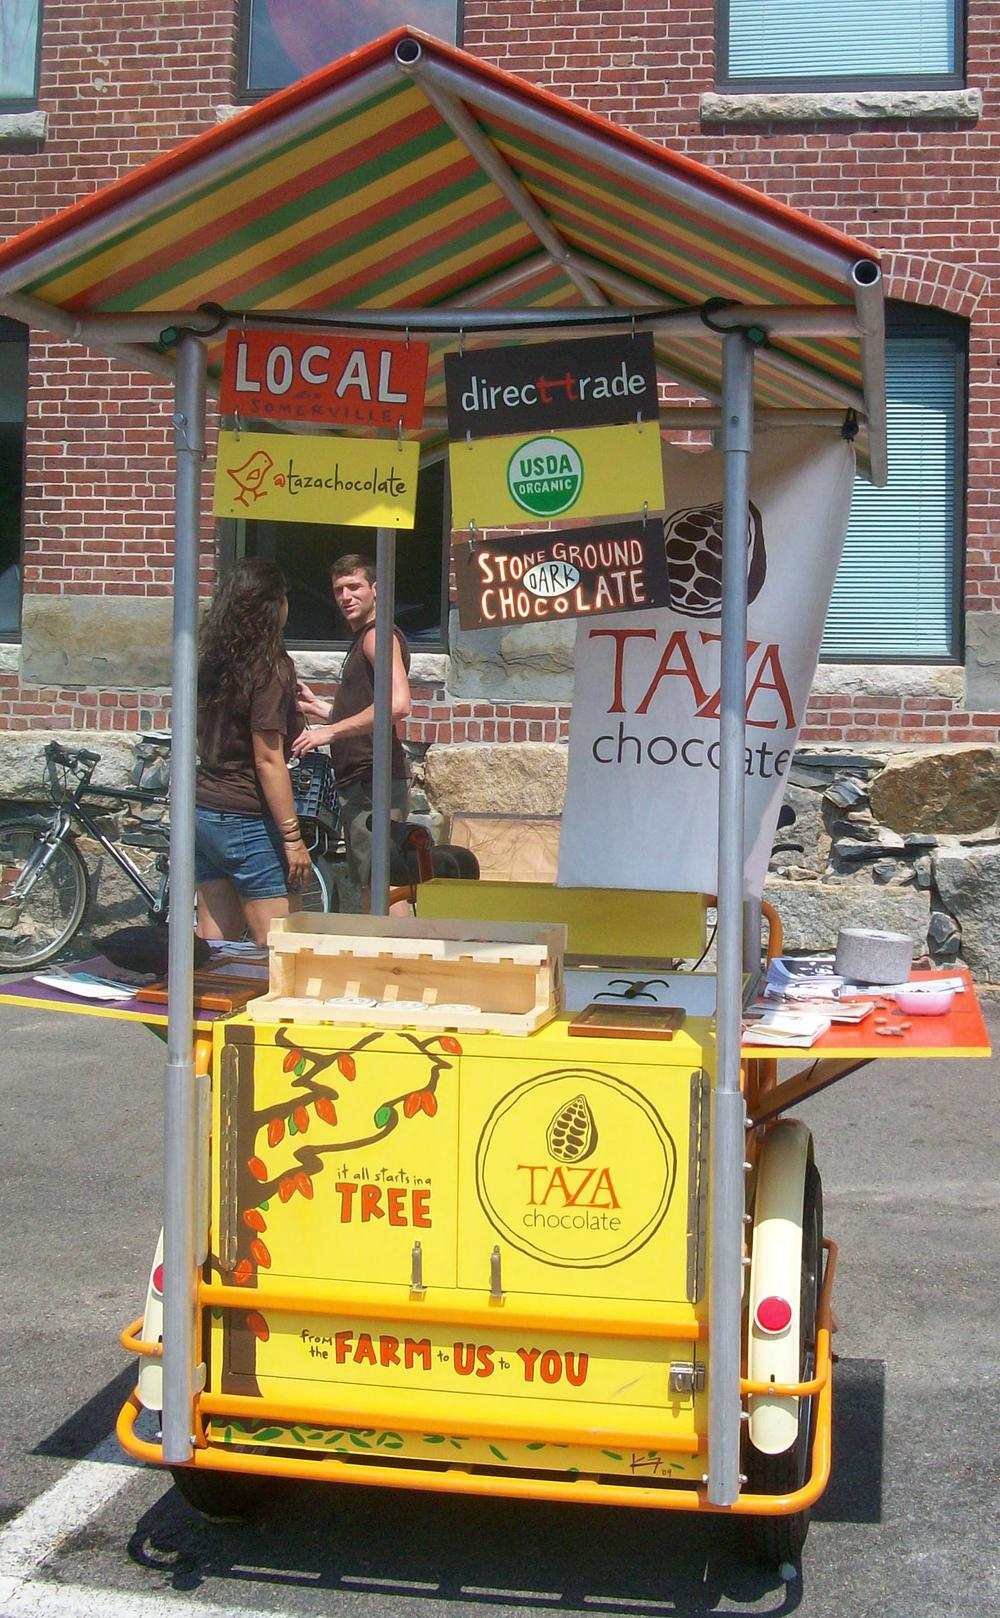 The Taza Chococycle at the Boston Food Truck Festival. (Sarah Knight/WBUR)